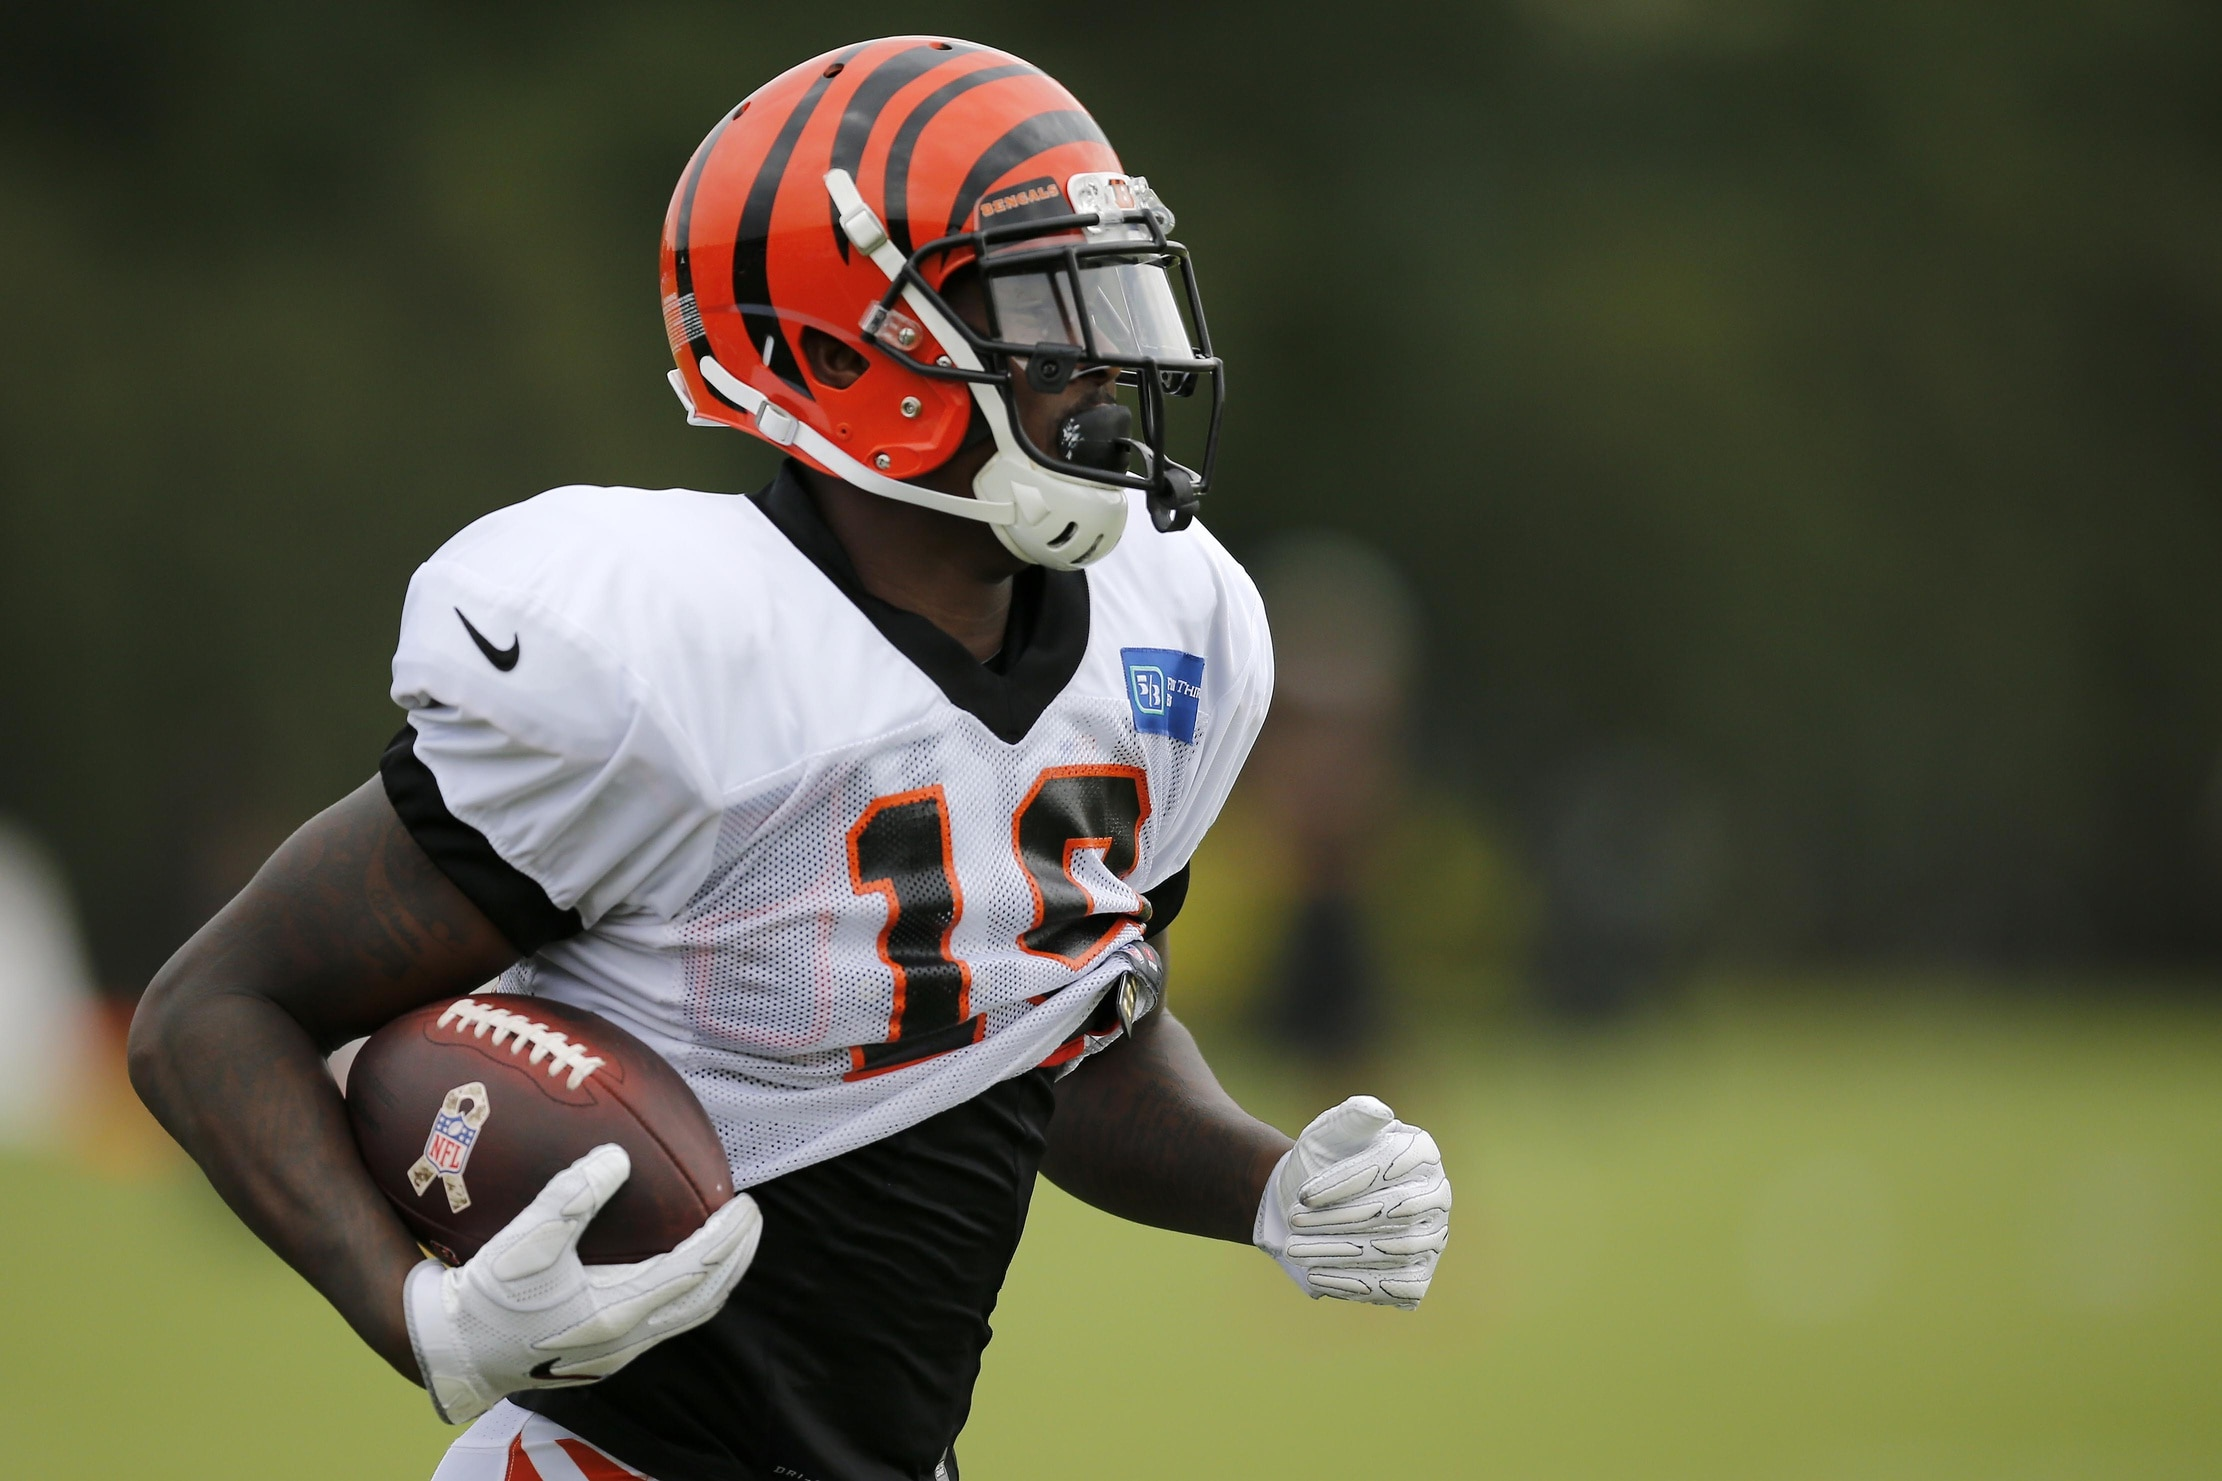 info for 4a3a9 819a4 Bengals looking to extend Pro Bowl WR A.J. Green